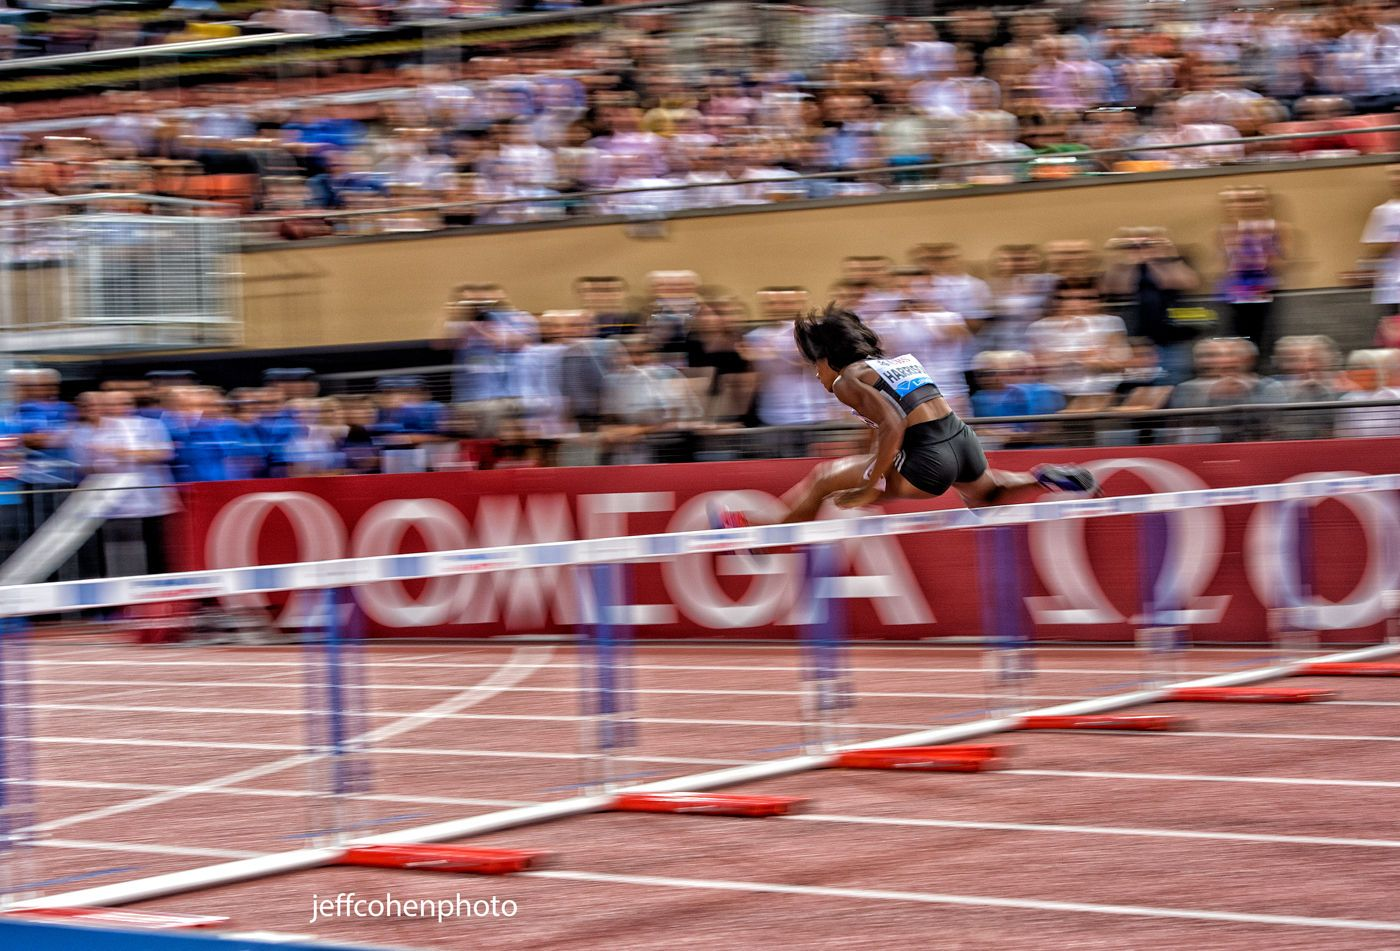 1r2016_athletissima_lausanne_k_harrison_100mh_jeff_cohen_photo_1340_web.jpg